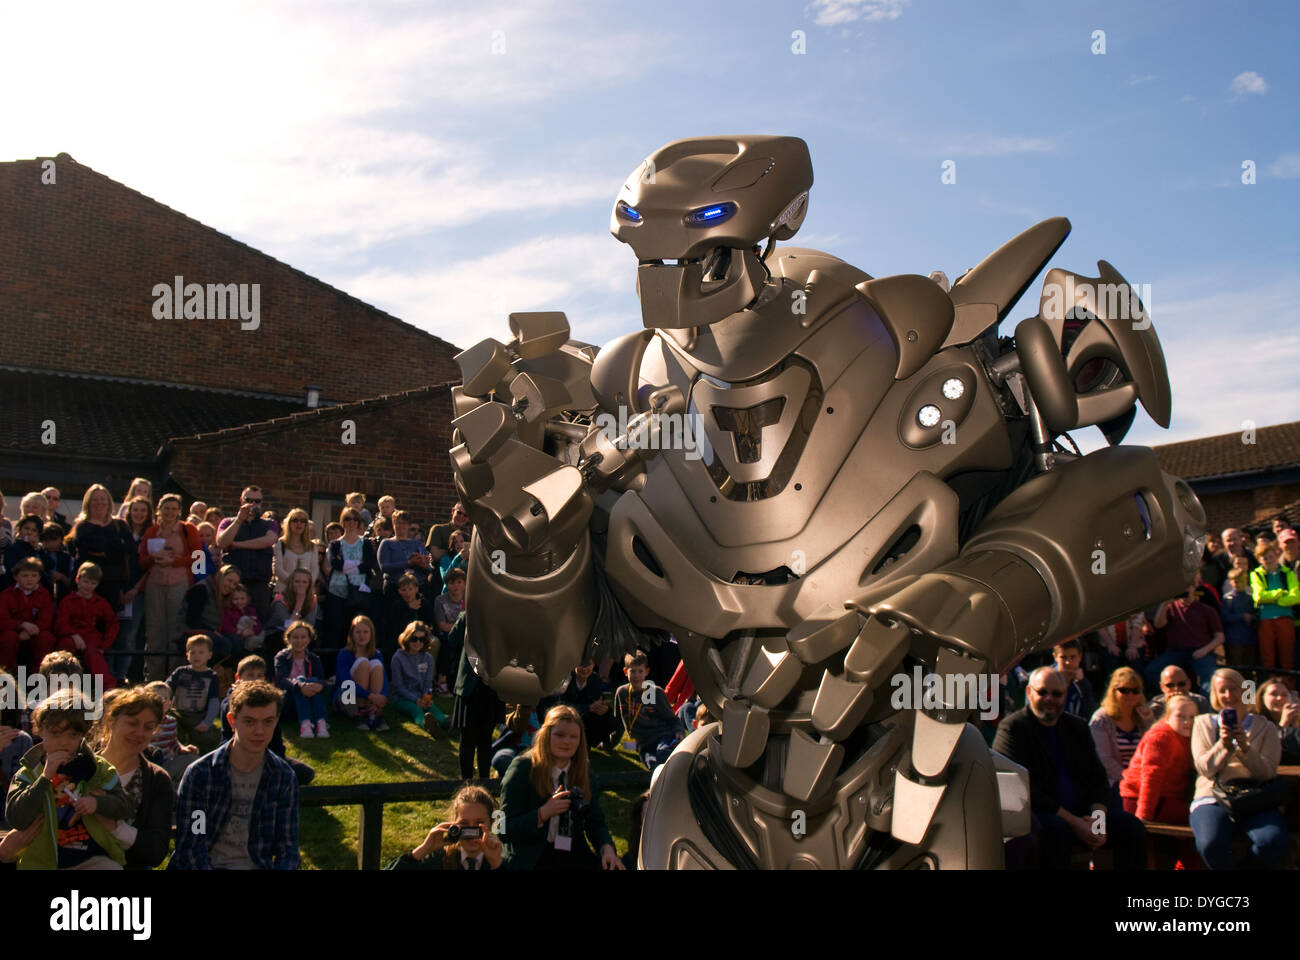 Titan the Robot appearing at the STEM (Science, Technology, Engineering, Mathematics) Festival, Liphook, Hampshire, UK. - Stock Image